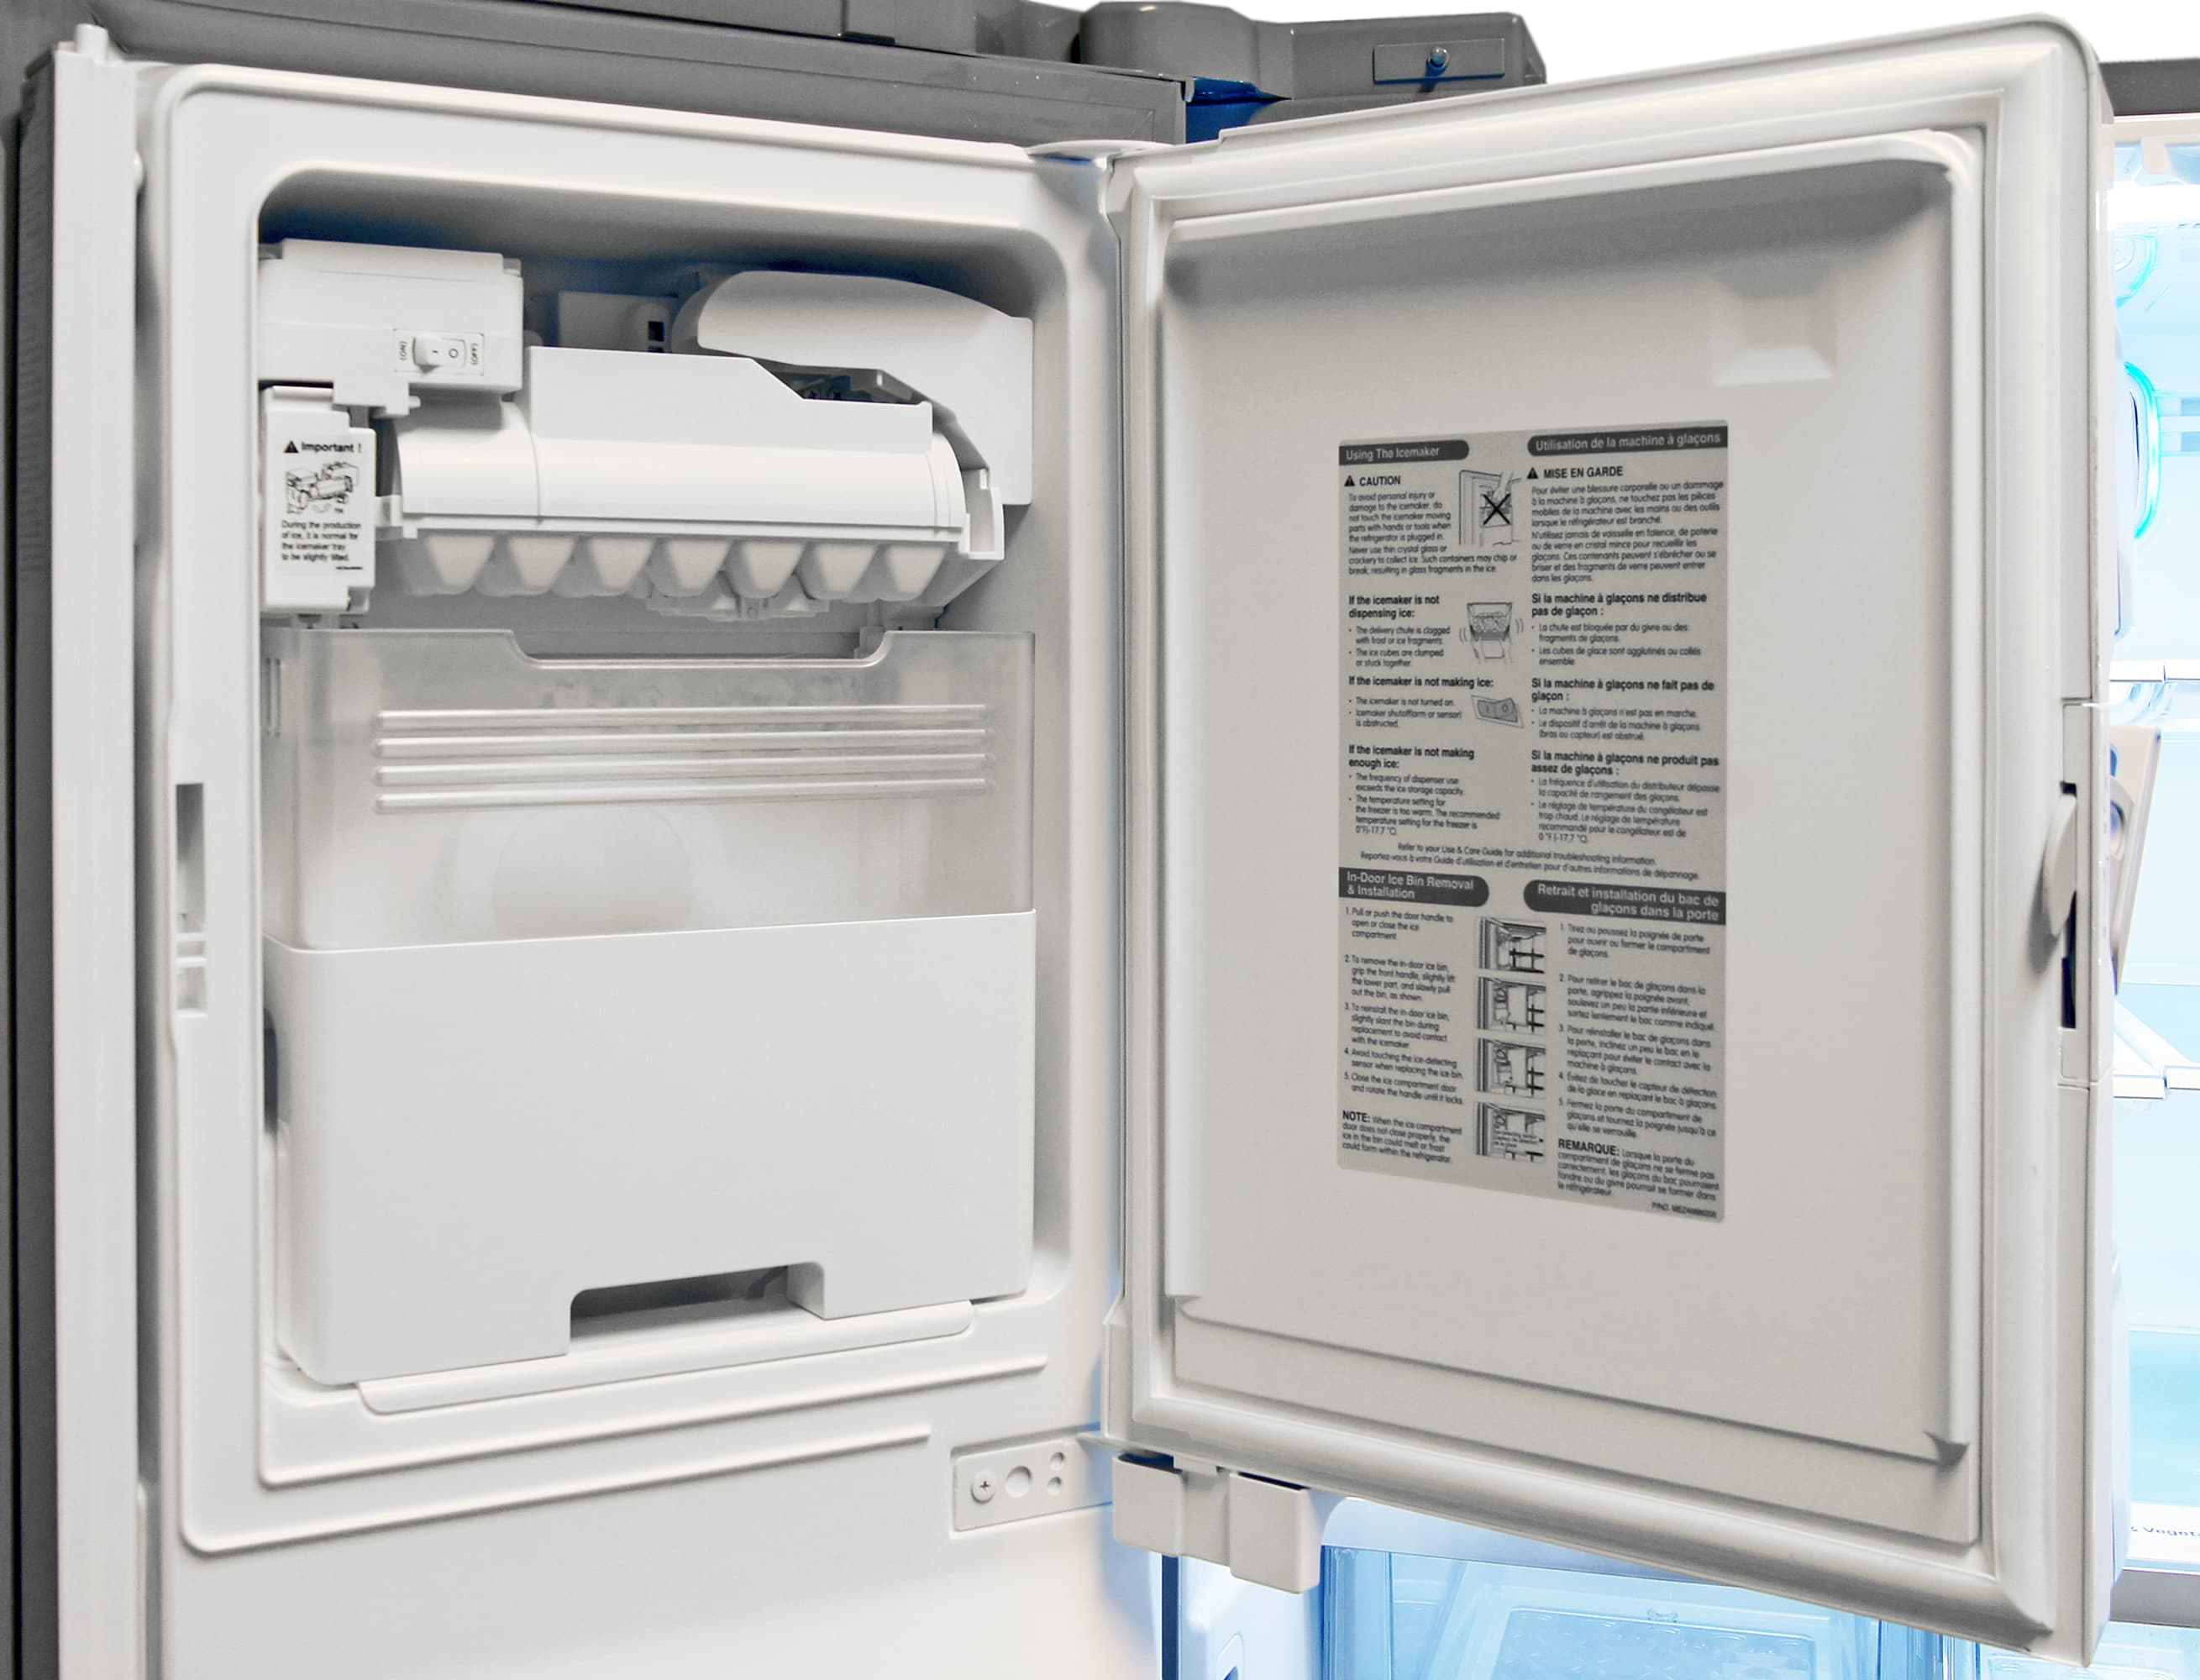 The LG LFX32945ST's door-mounted icemaker takes up minimal space while still serving up plenty of ice.